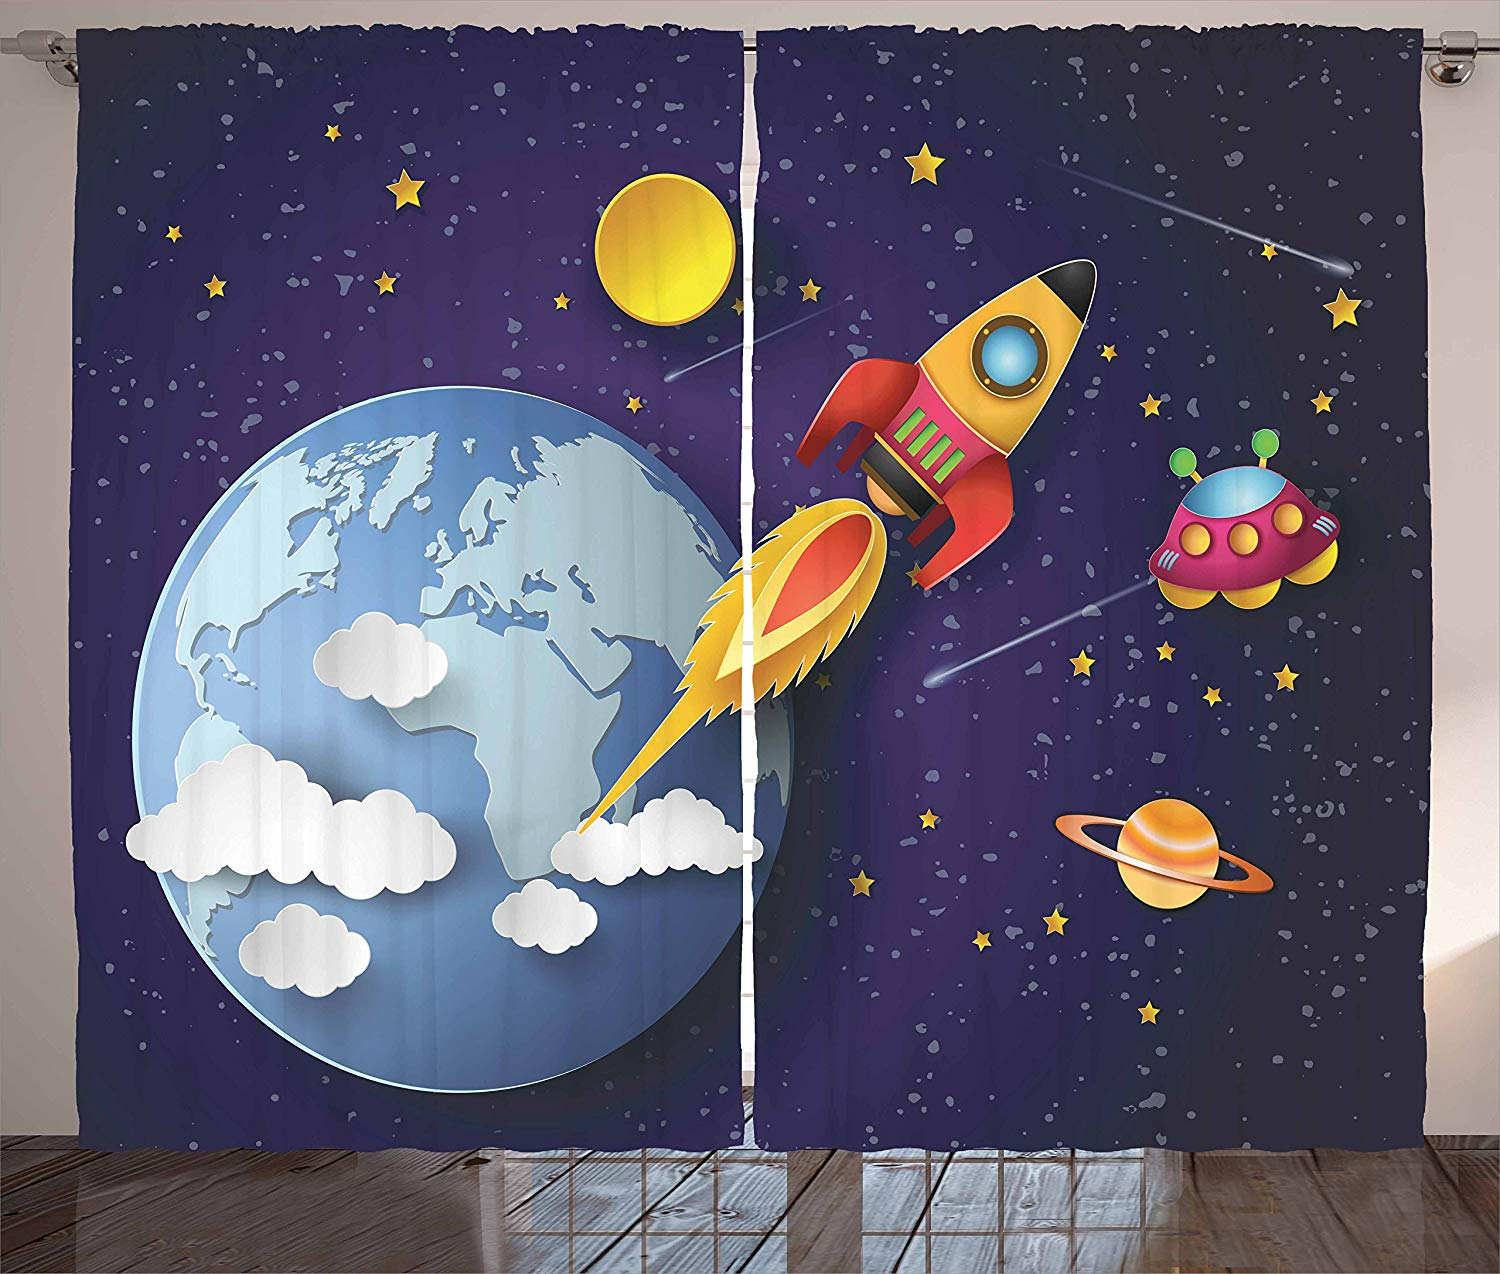 Outer Space Curtains Rocket On Planetary System With Earth Stars UFO Saturn Sun Galaxy Boys Living Room Bedroom Window Drapes